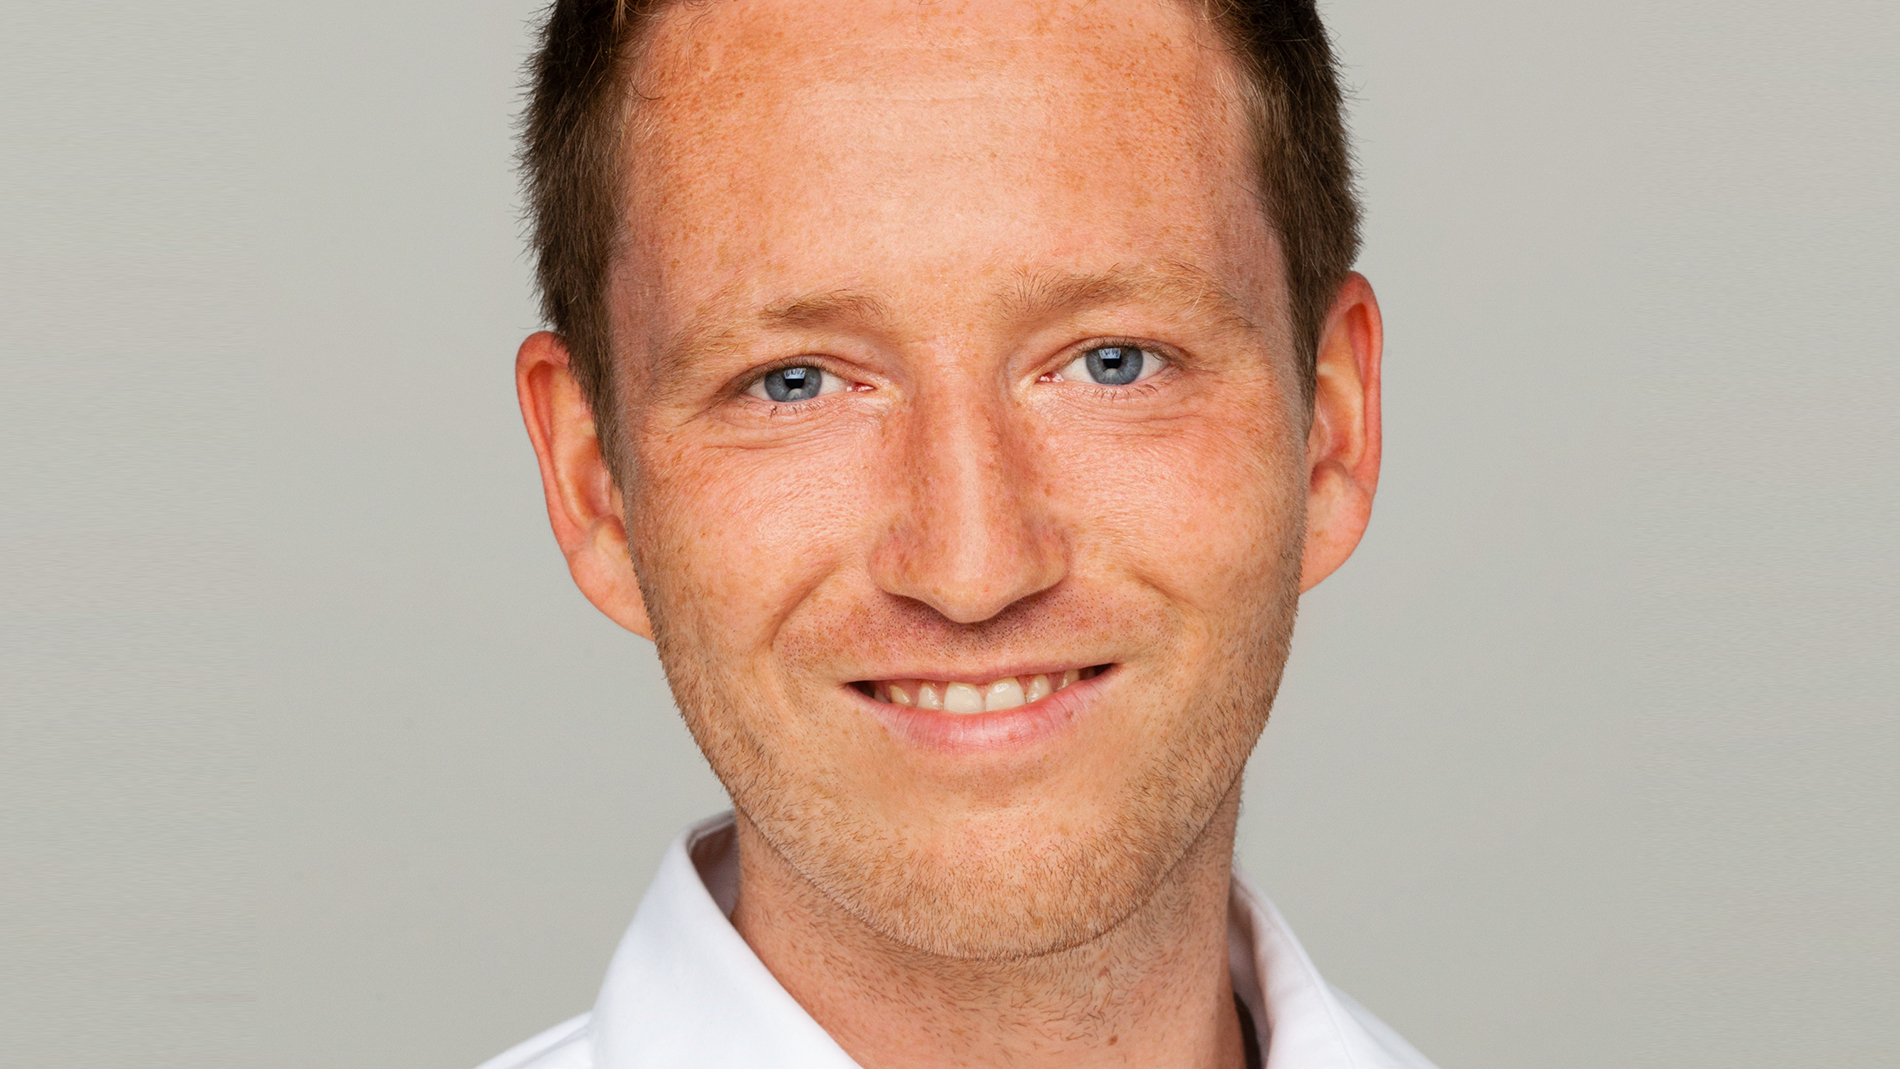 Christopher Enders is Director Brand Management & Brand Development Technology from July 2020. (Source: Messe Frankfurt Exhibition GmbH / Marc Jacquemin)